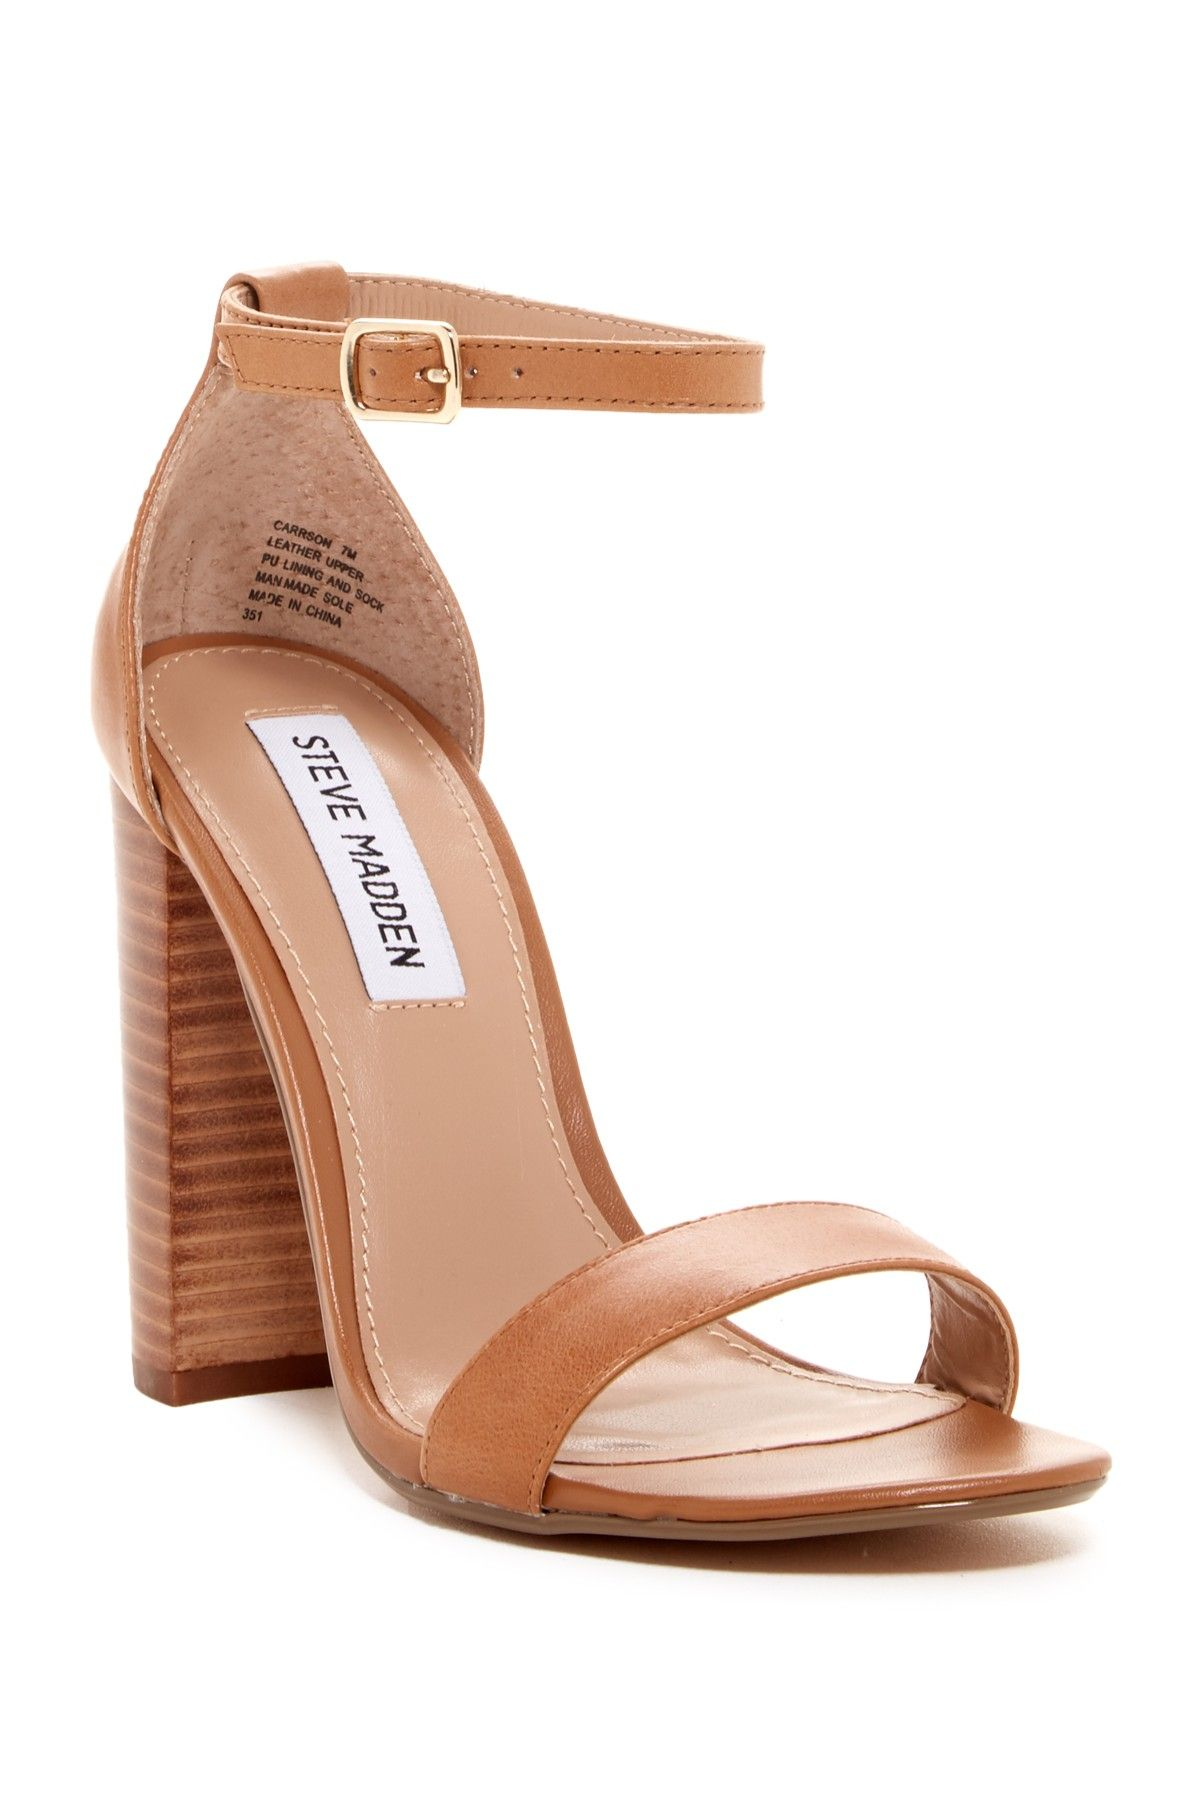 cecf16090614 An elegant pair of Steve Madden sandals that will go with any work outfit